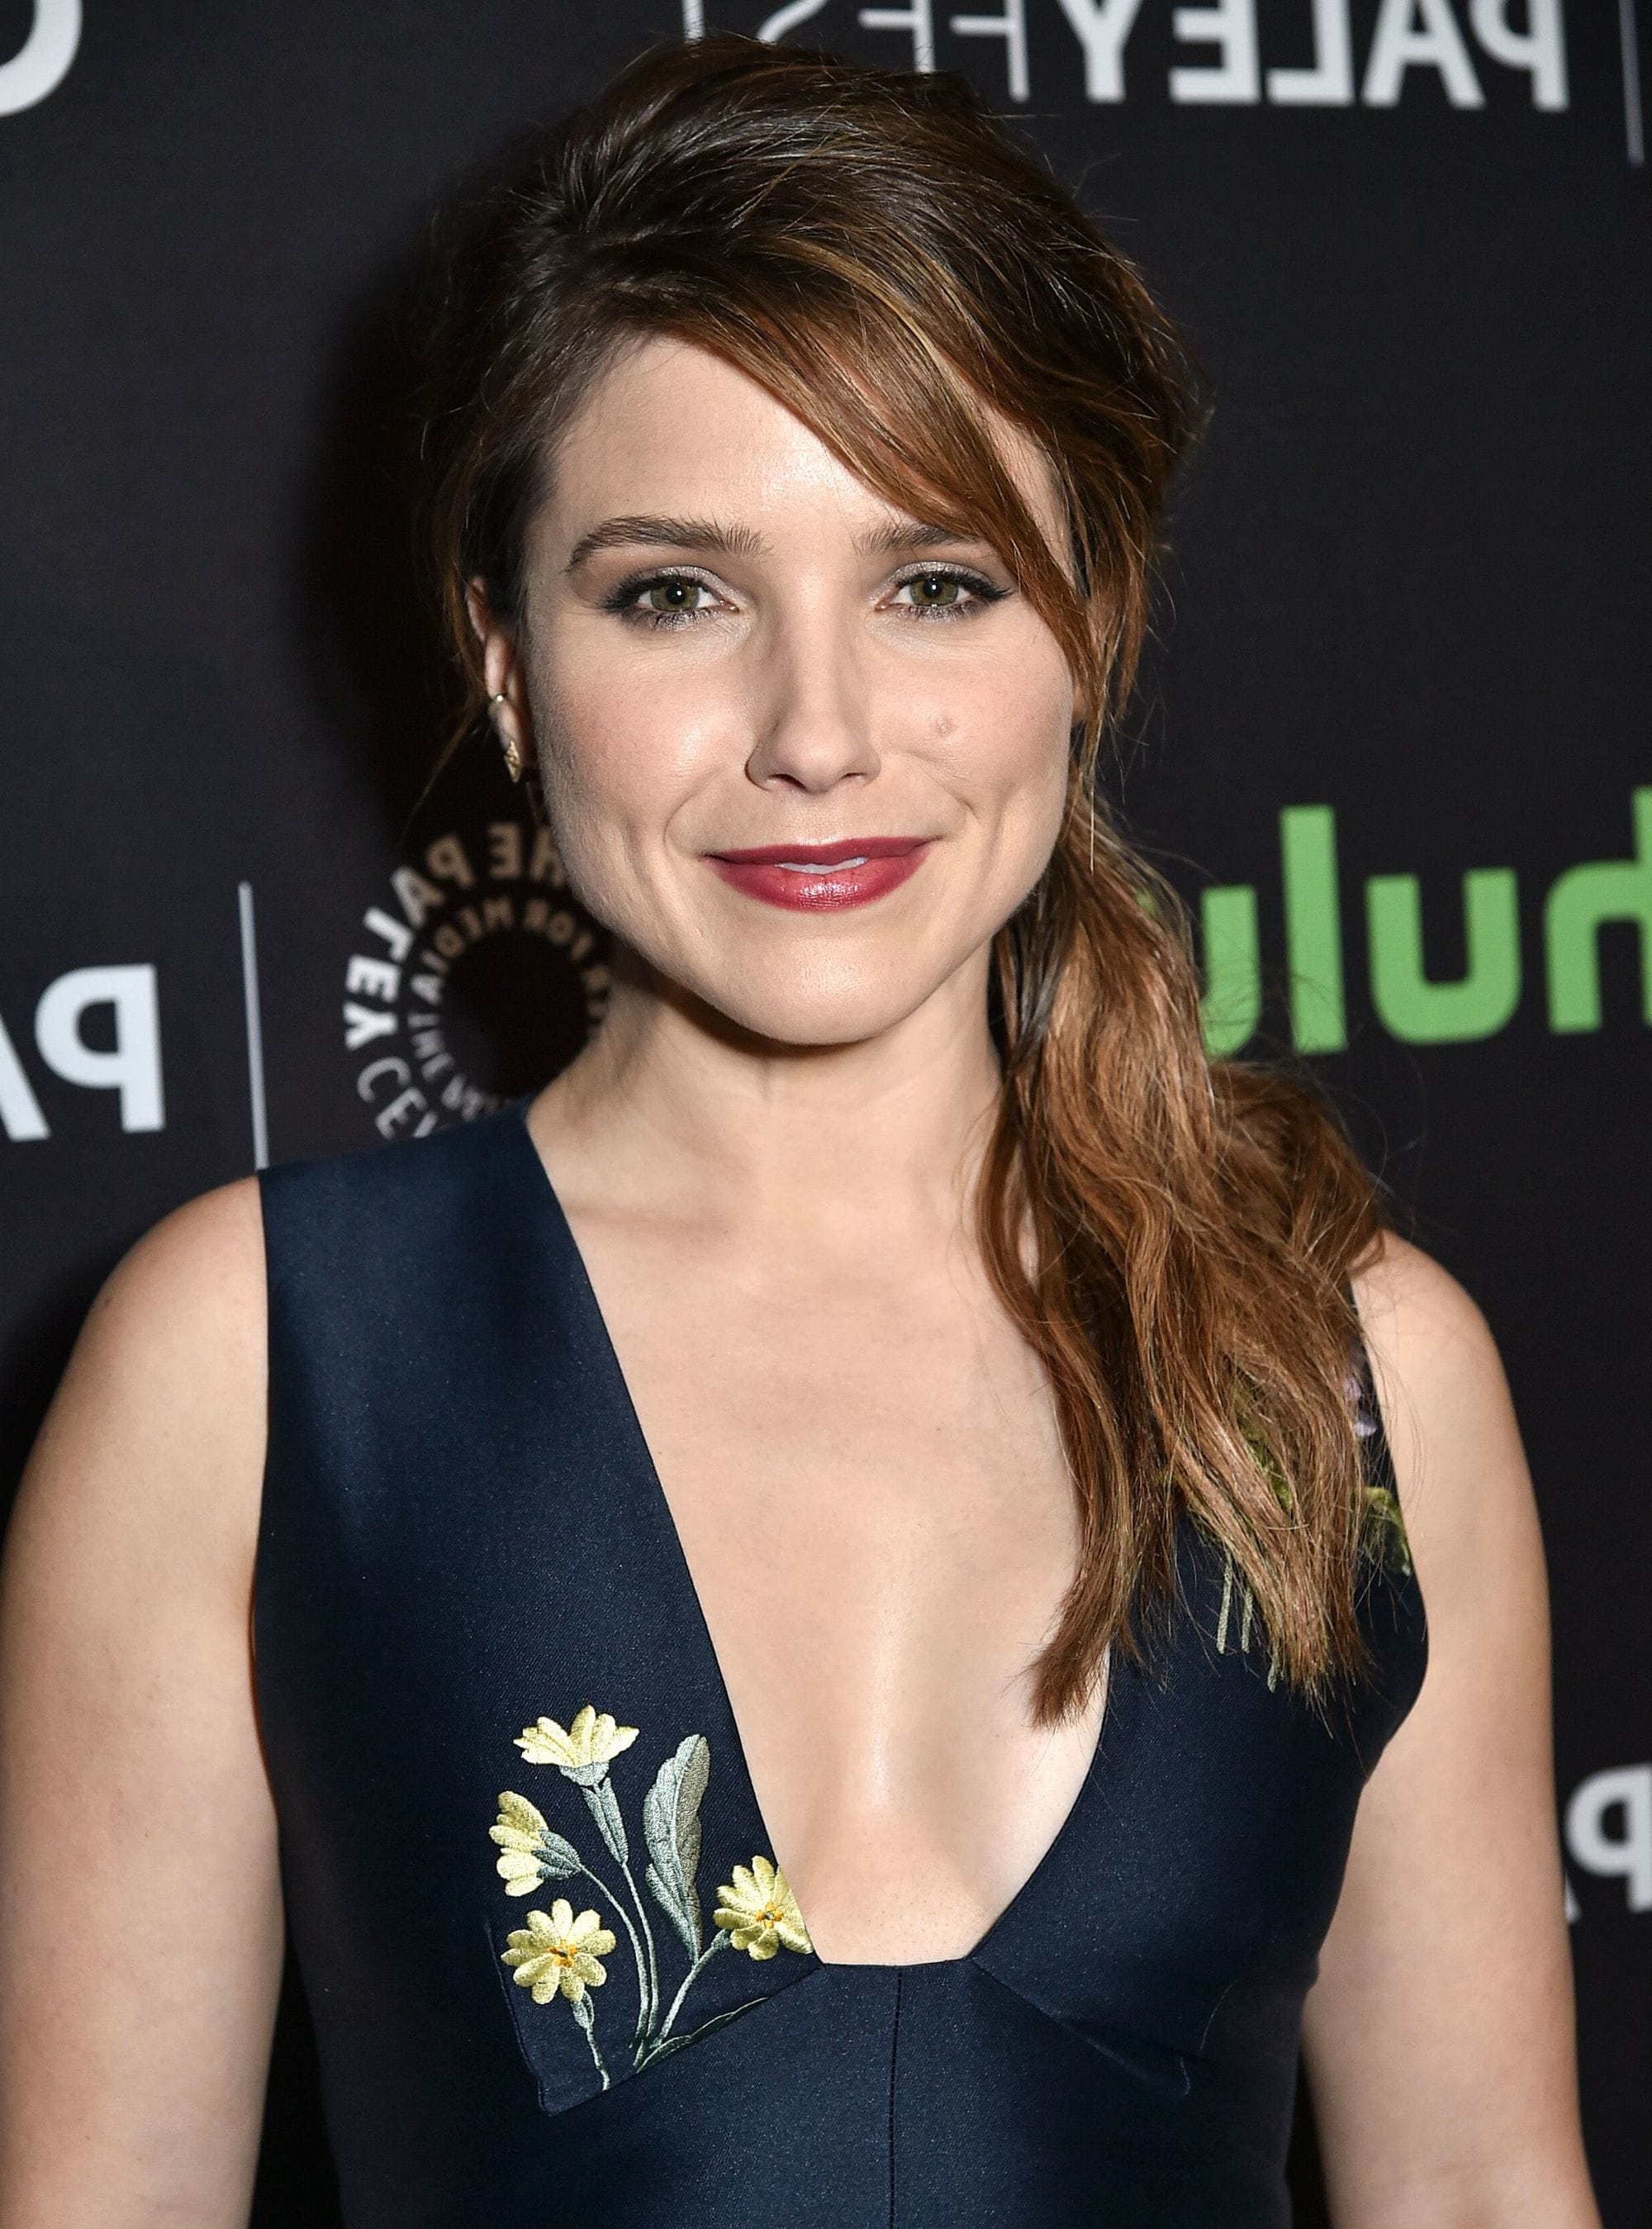 Ponytail With Bangs: 7 Fresh New Ways To Wear The Style | All Things Pertaining To Sophia Bush Short Hairstyles (View 10 of 25)